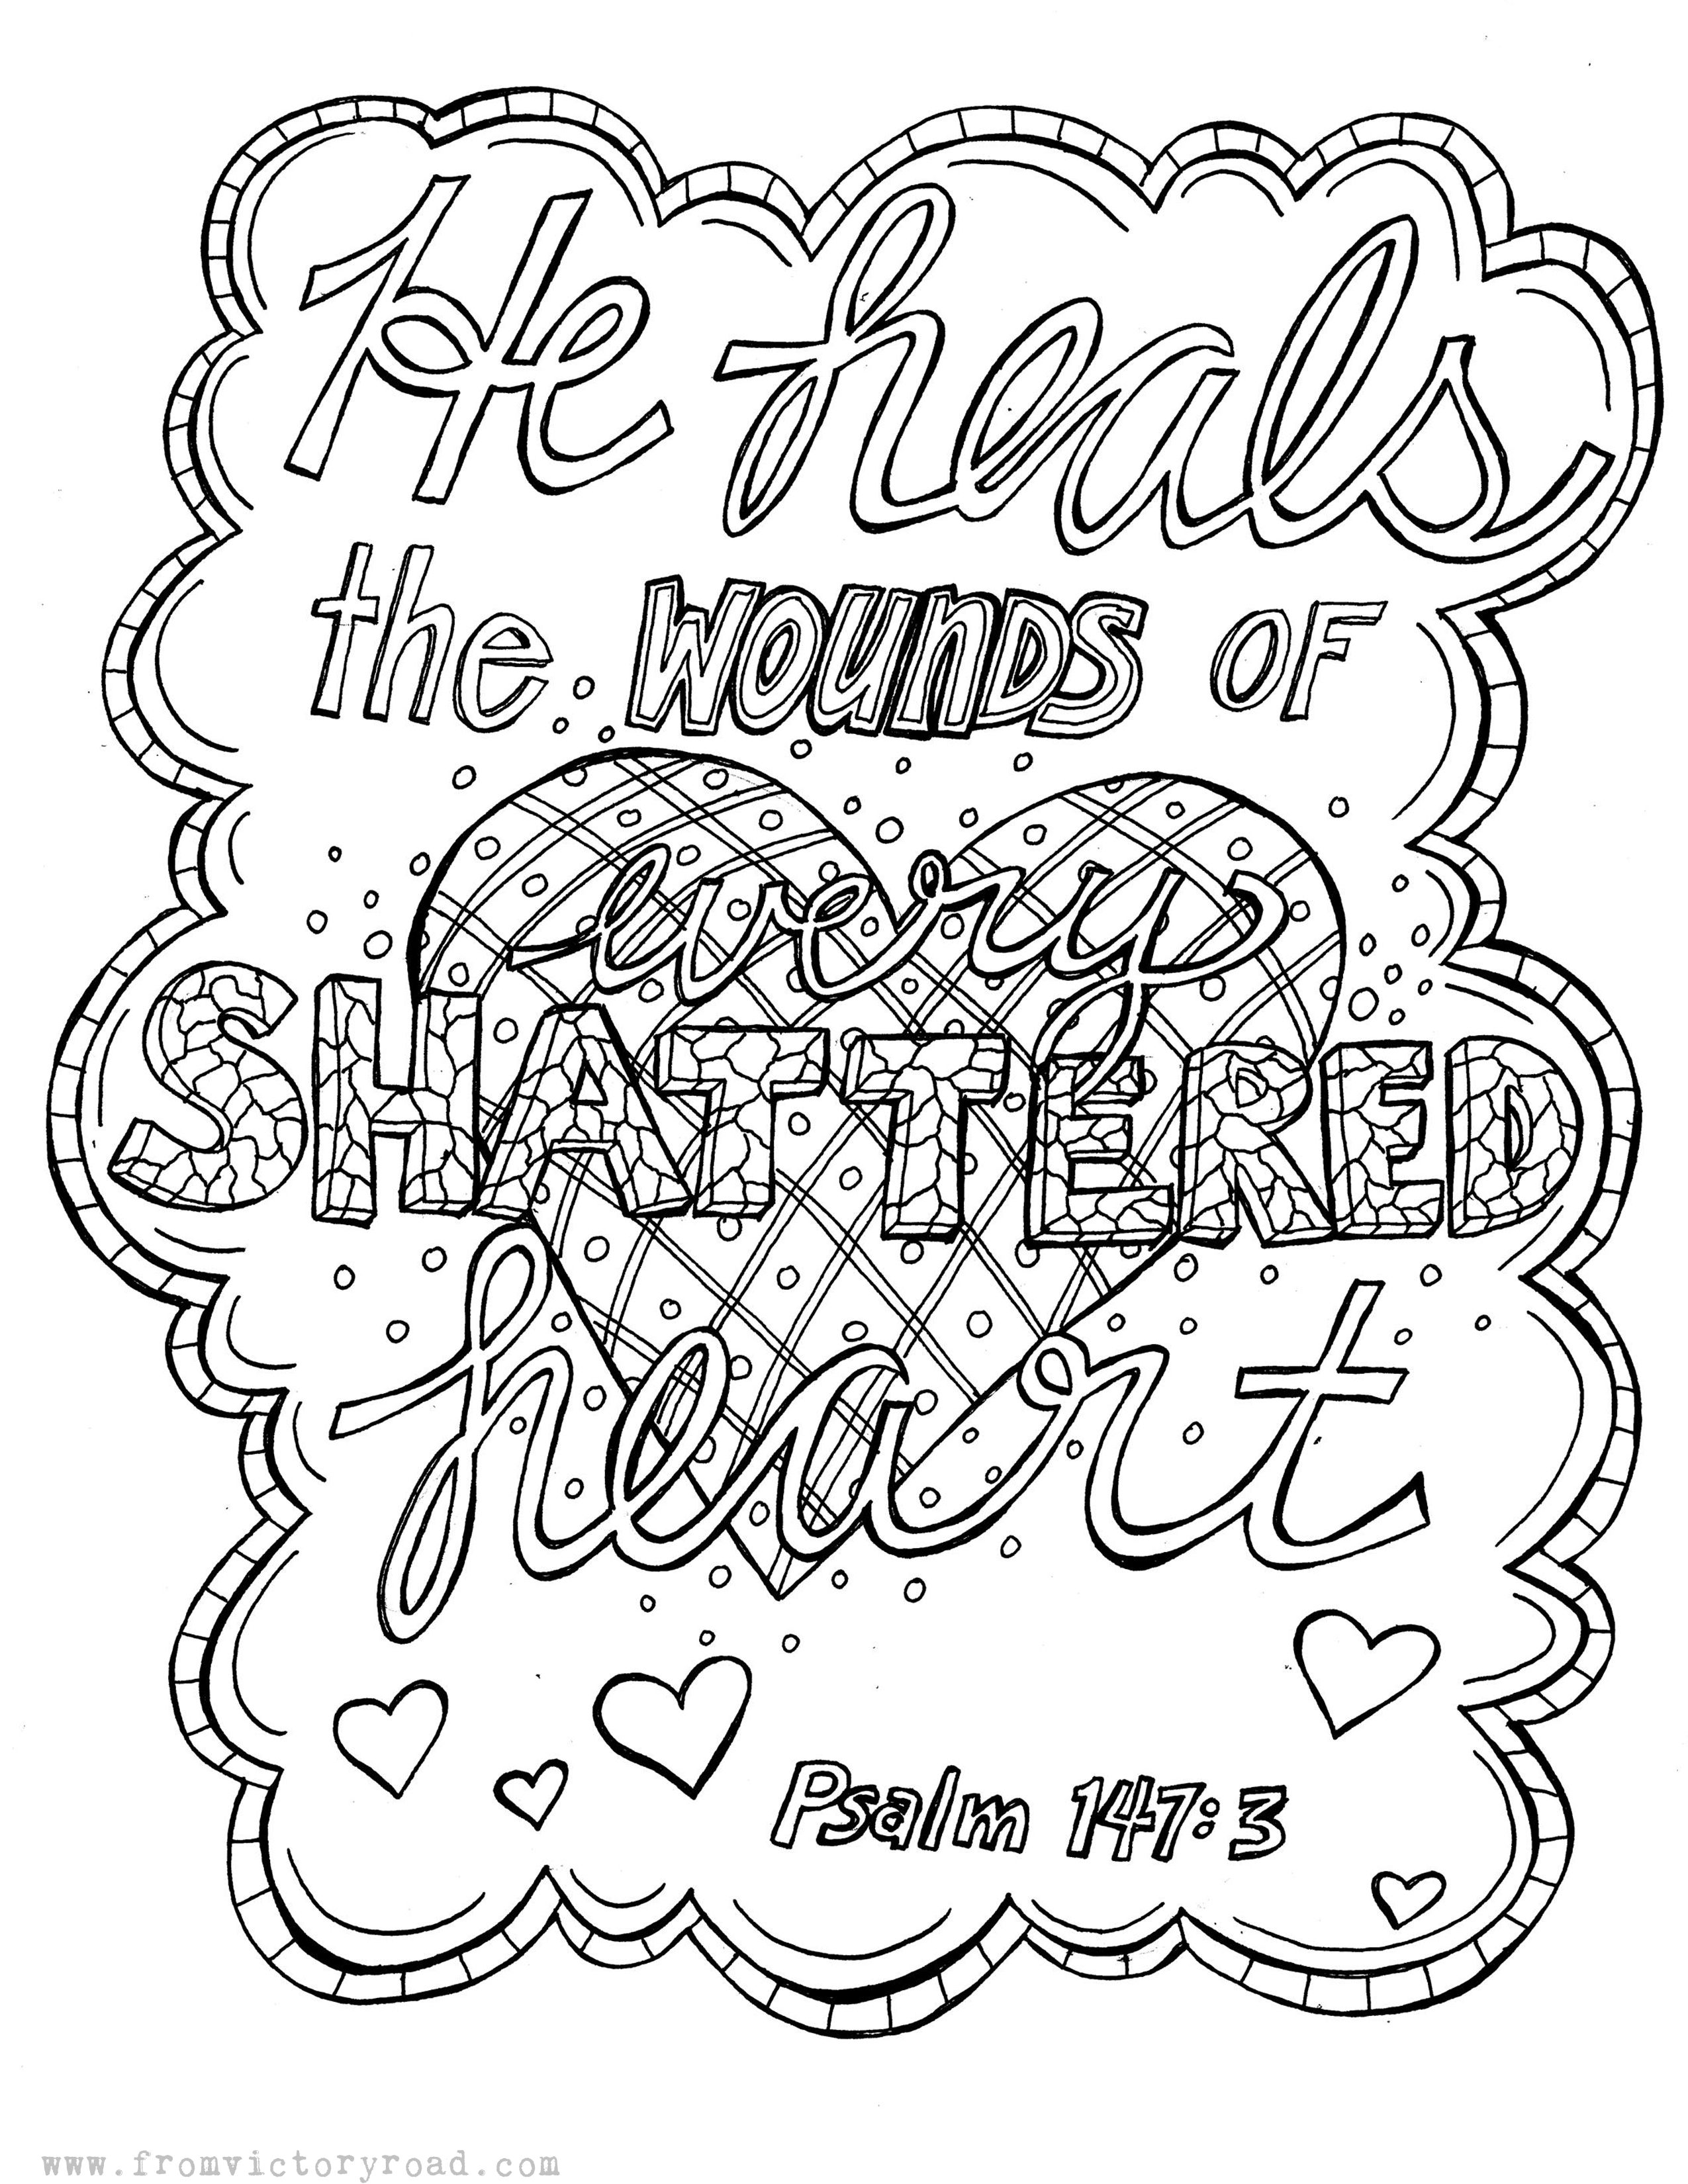 Psalm 147:3 Coloring Page | Scriptures Coloring | Coloring